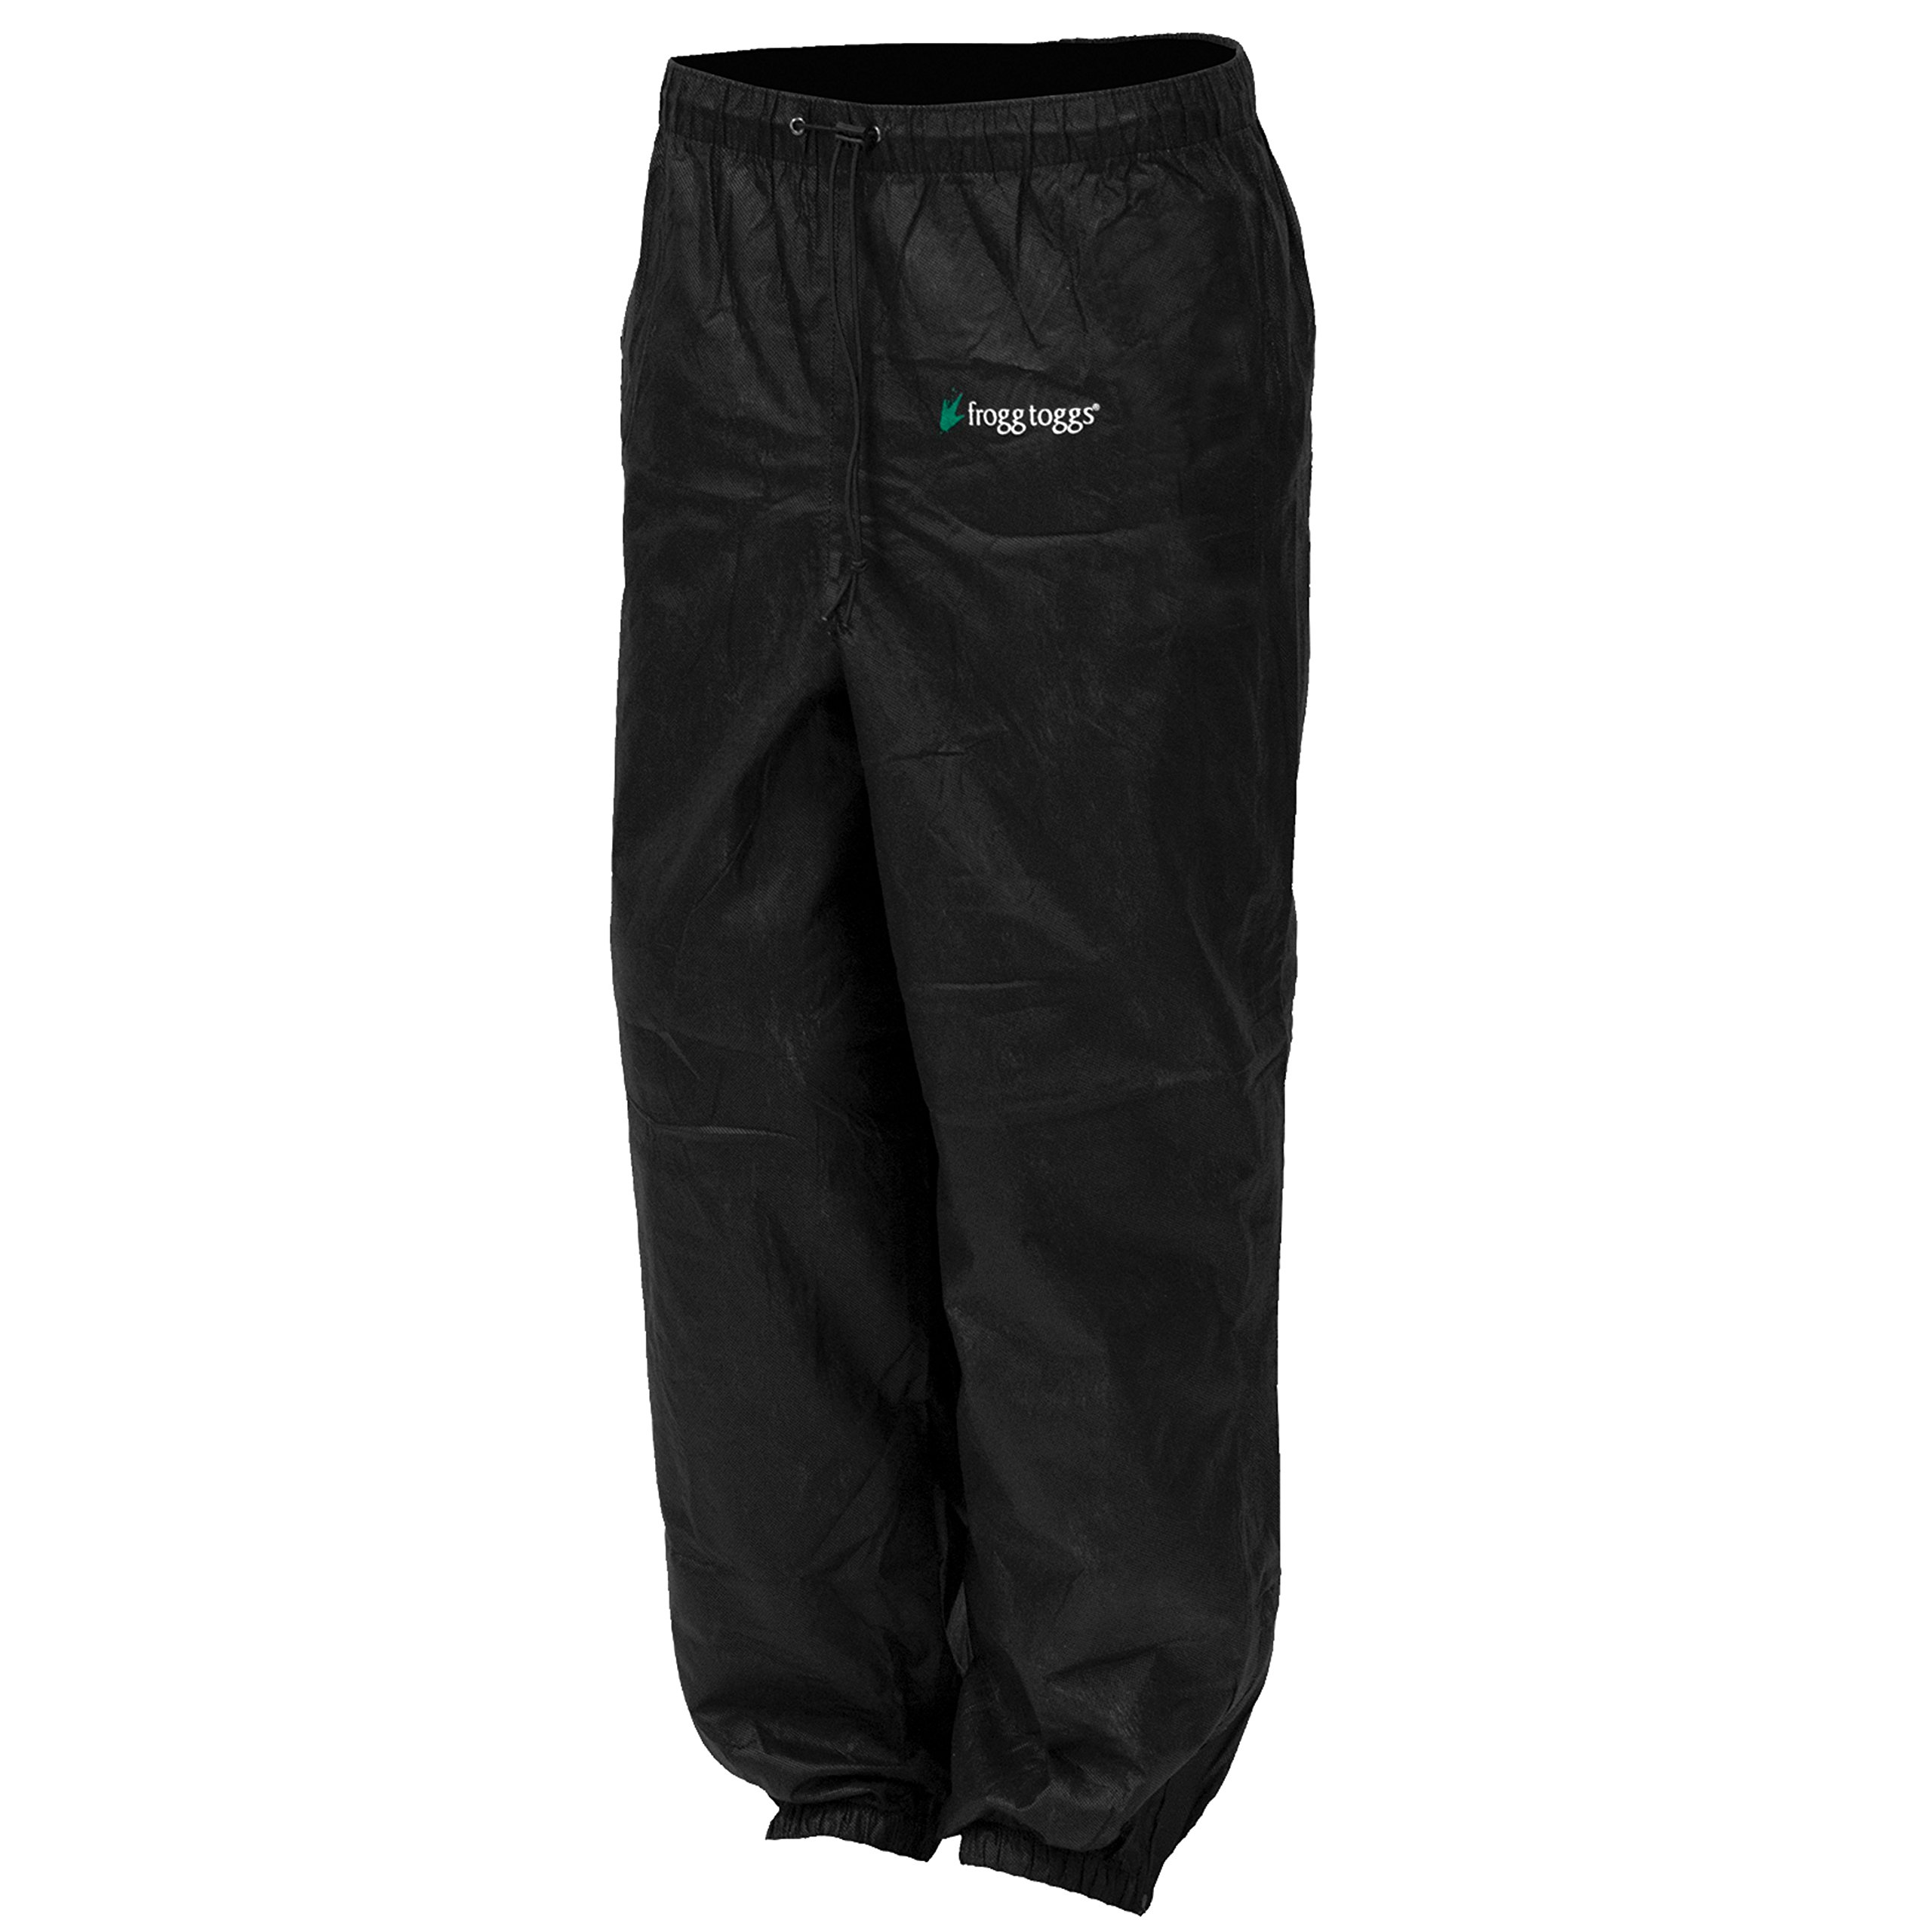 Frogg Toggs Men's Pro Action Pant, Large - Black